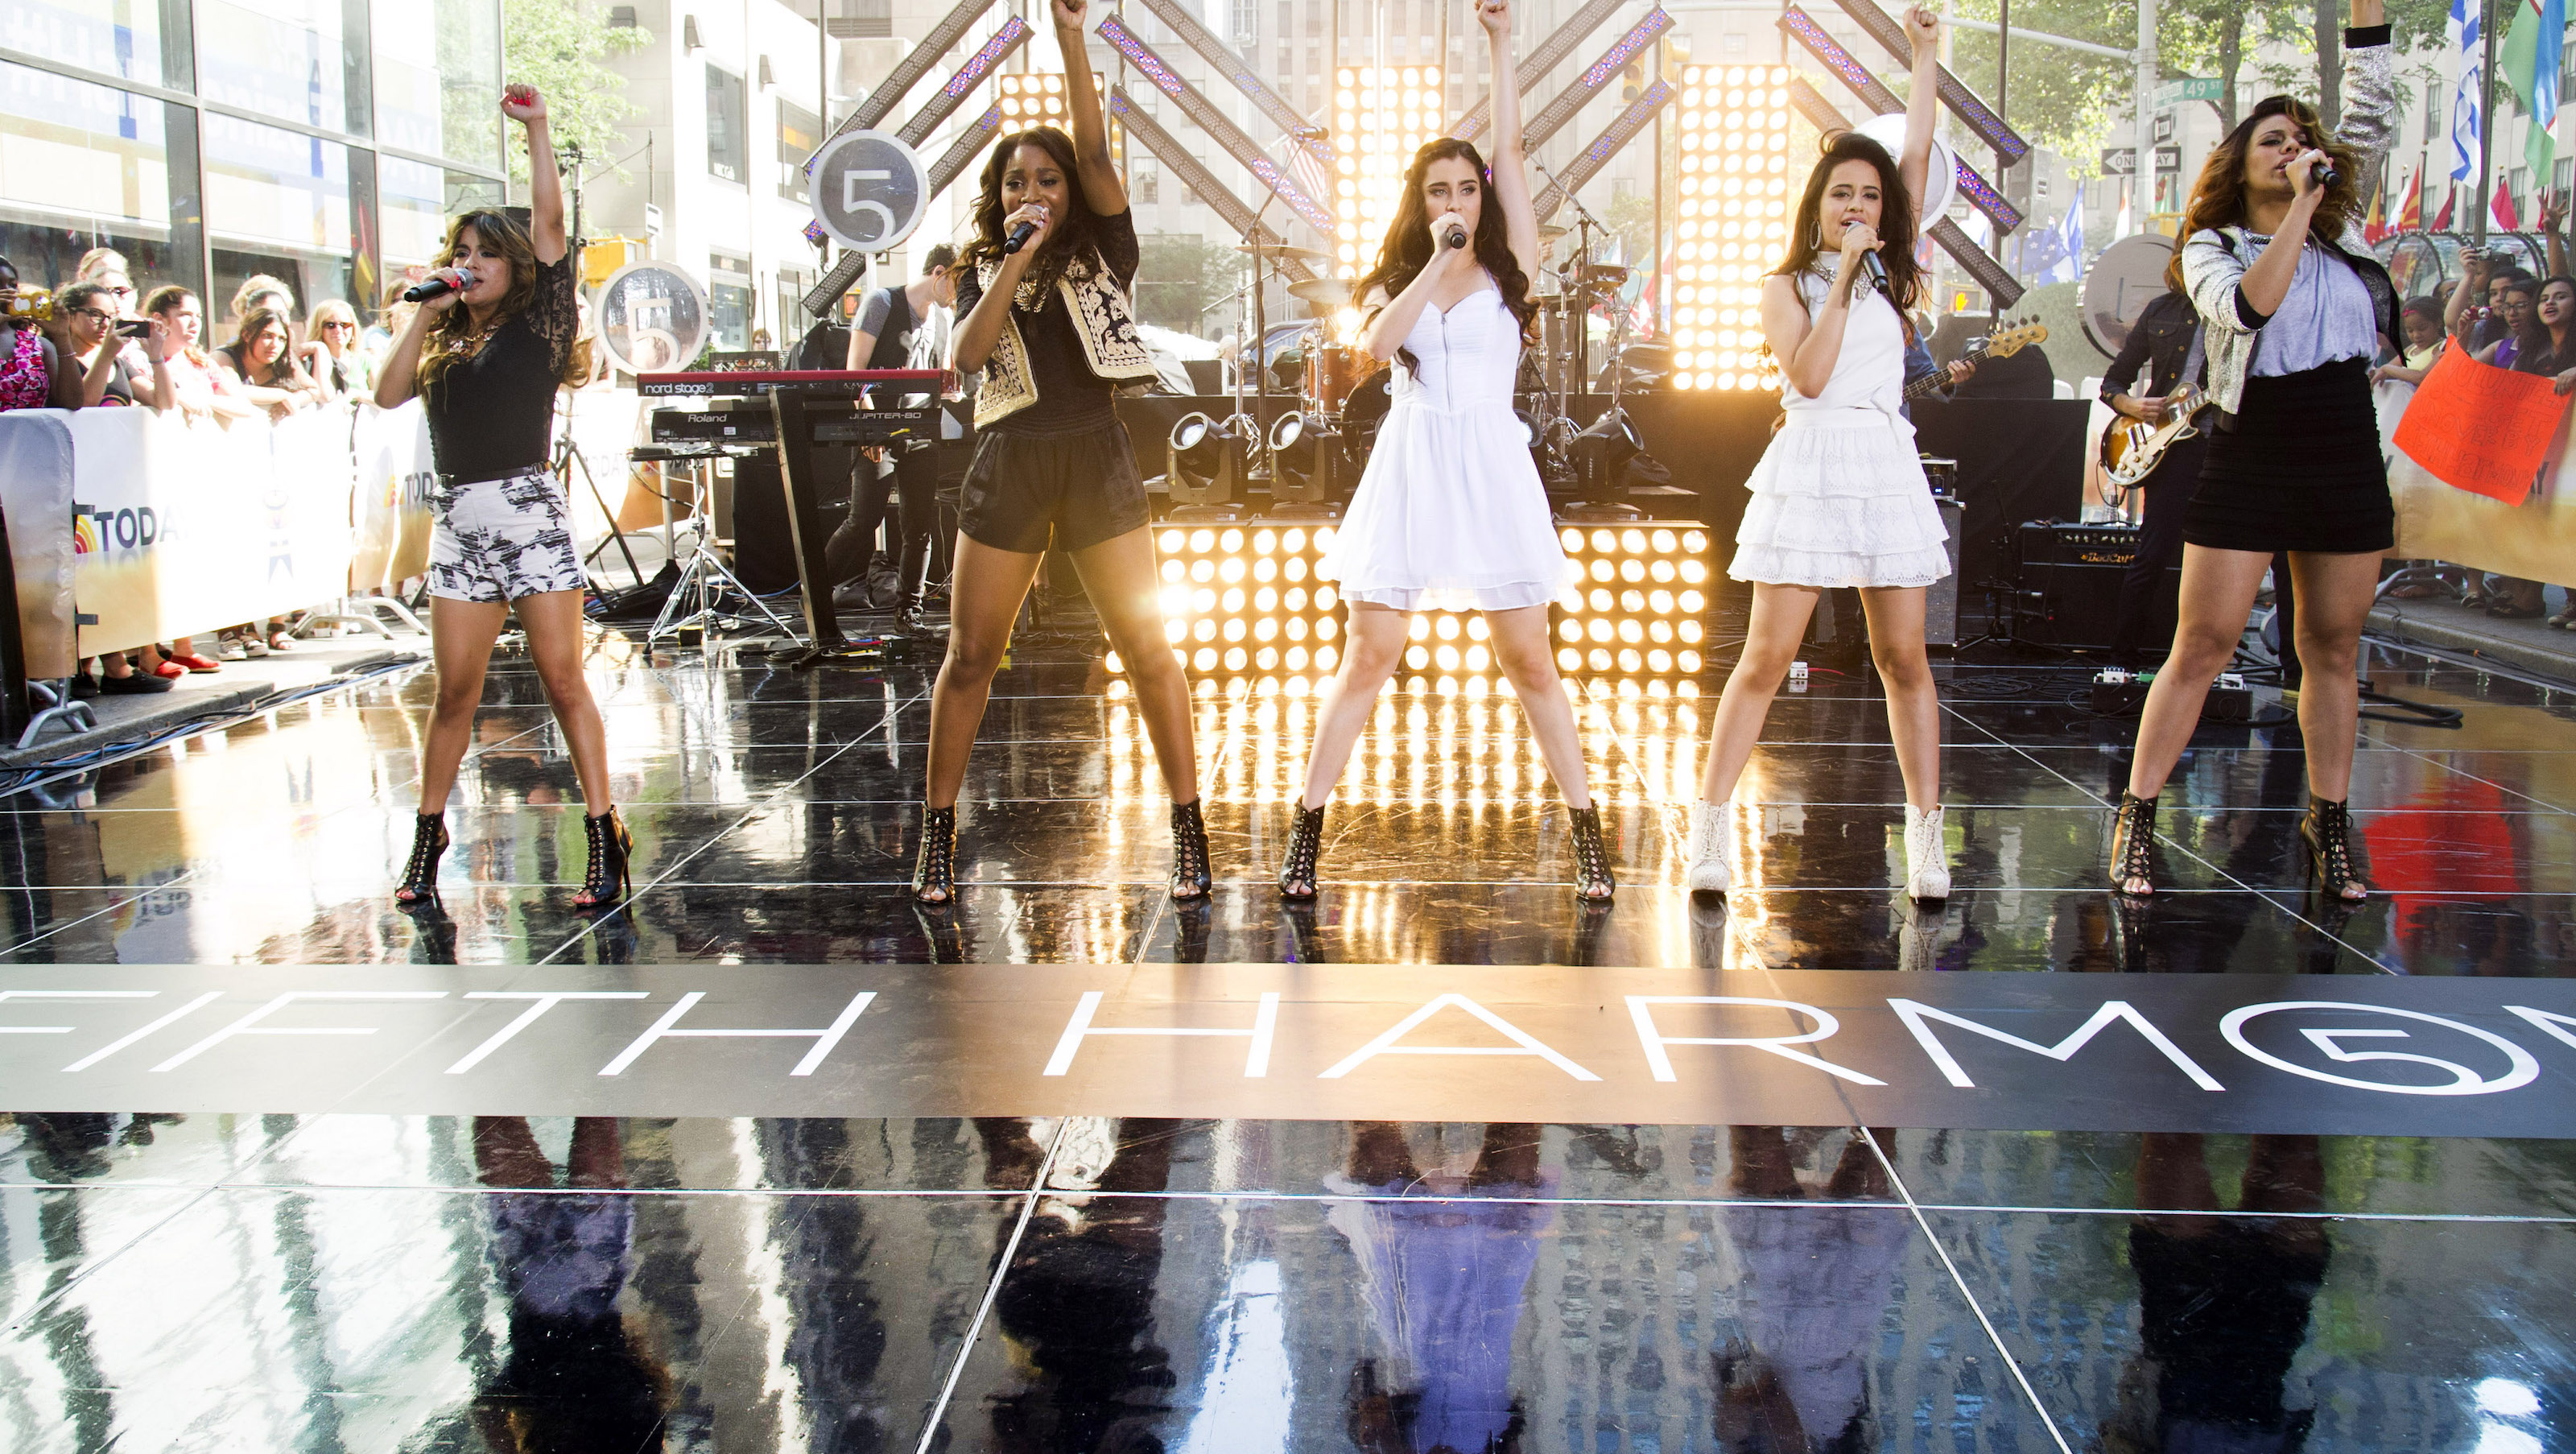 """Members of the band Fifth Harmony, from left, Ally Brooke Hernandez, Normani Hamilton, Lauren Jauregui, Camila Cabello and Dinah Jane Hansen perform on NBC's """"Today"""" show on Thursday, July 18, 2013 in New York. (Photo by Charles Sykes/Invision/AP)"""